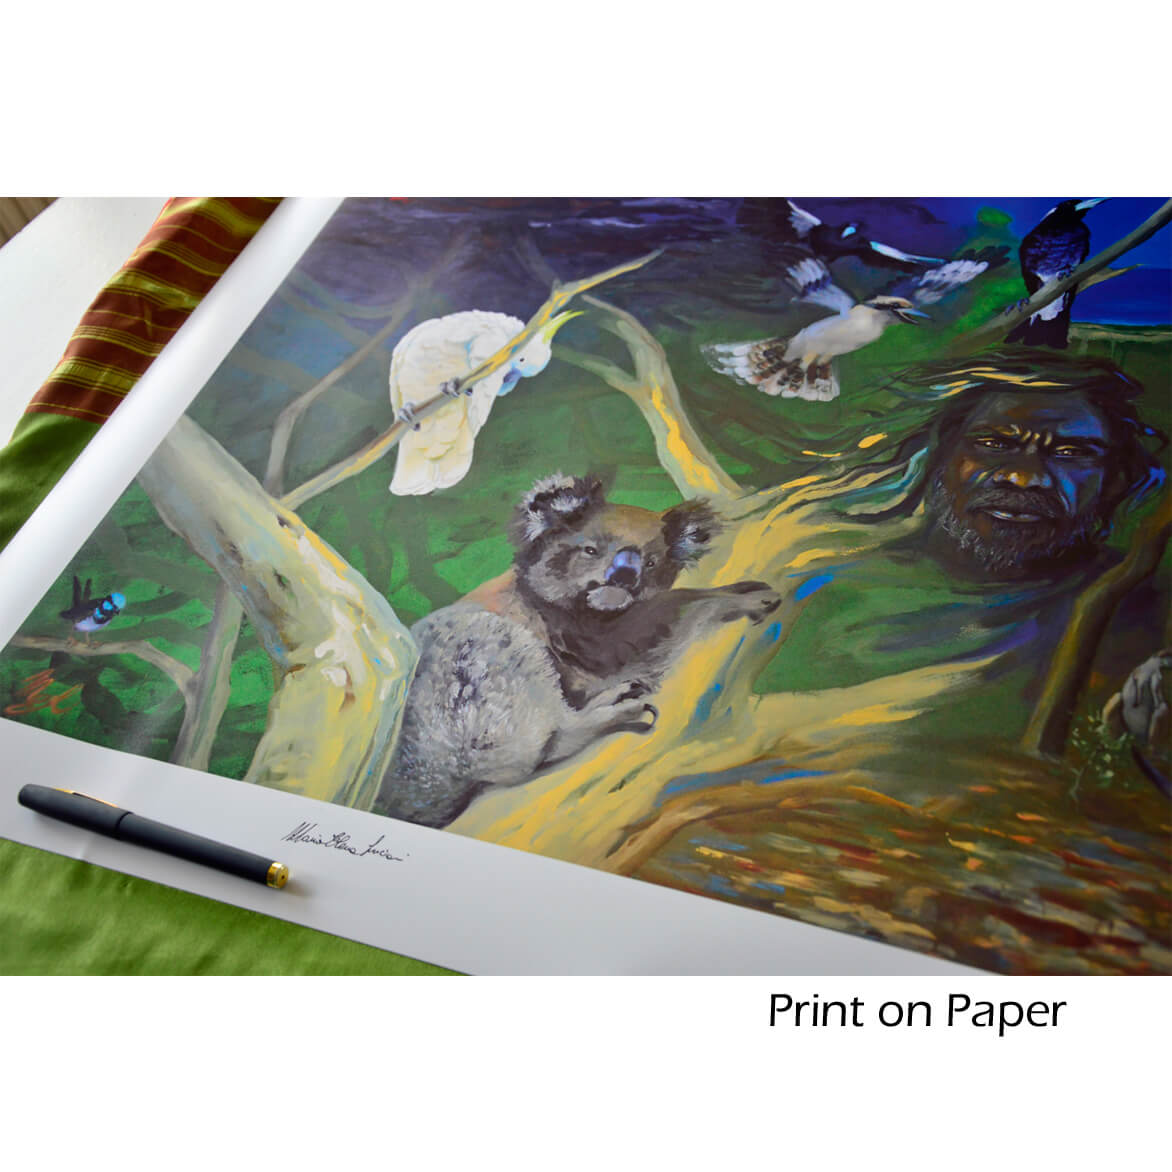 Hand signed print on paper with Koala and Australian nature.